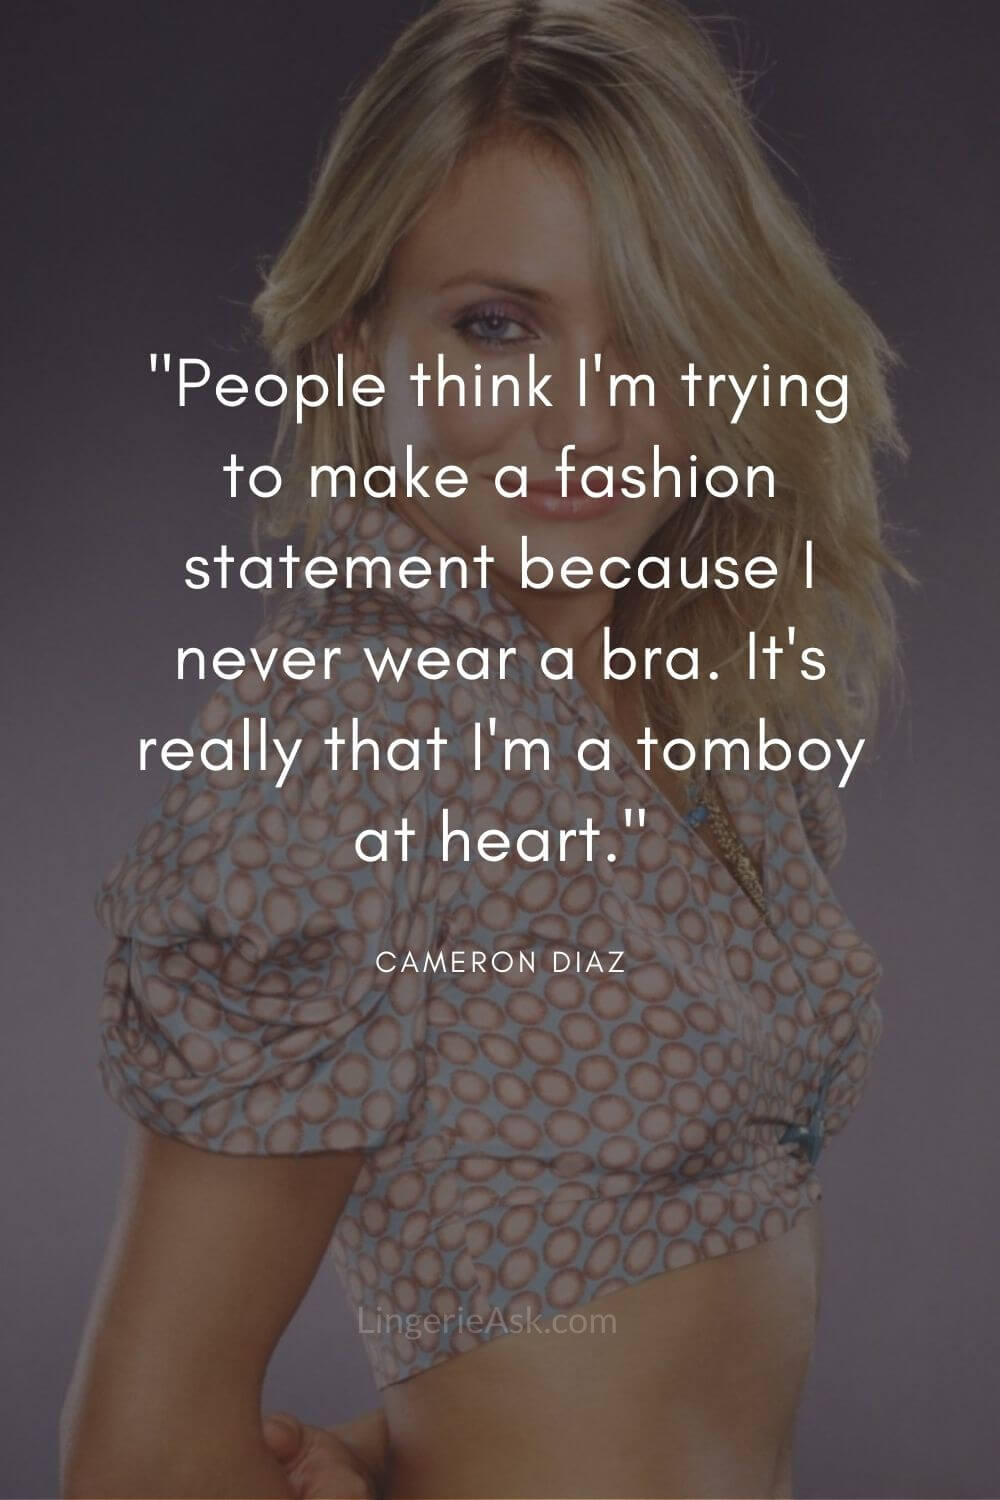 People think I'm trying to make a fashion statement because I never wear a bra. It's really that I'm a tomboy at heart.